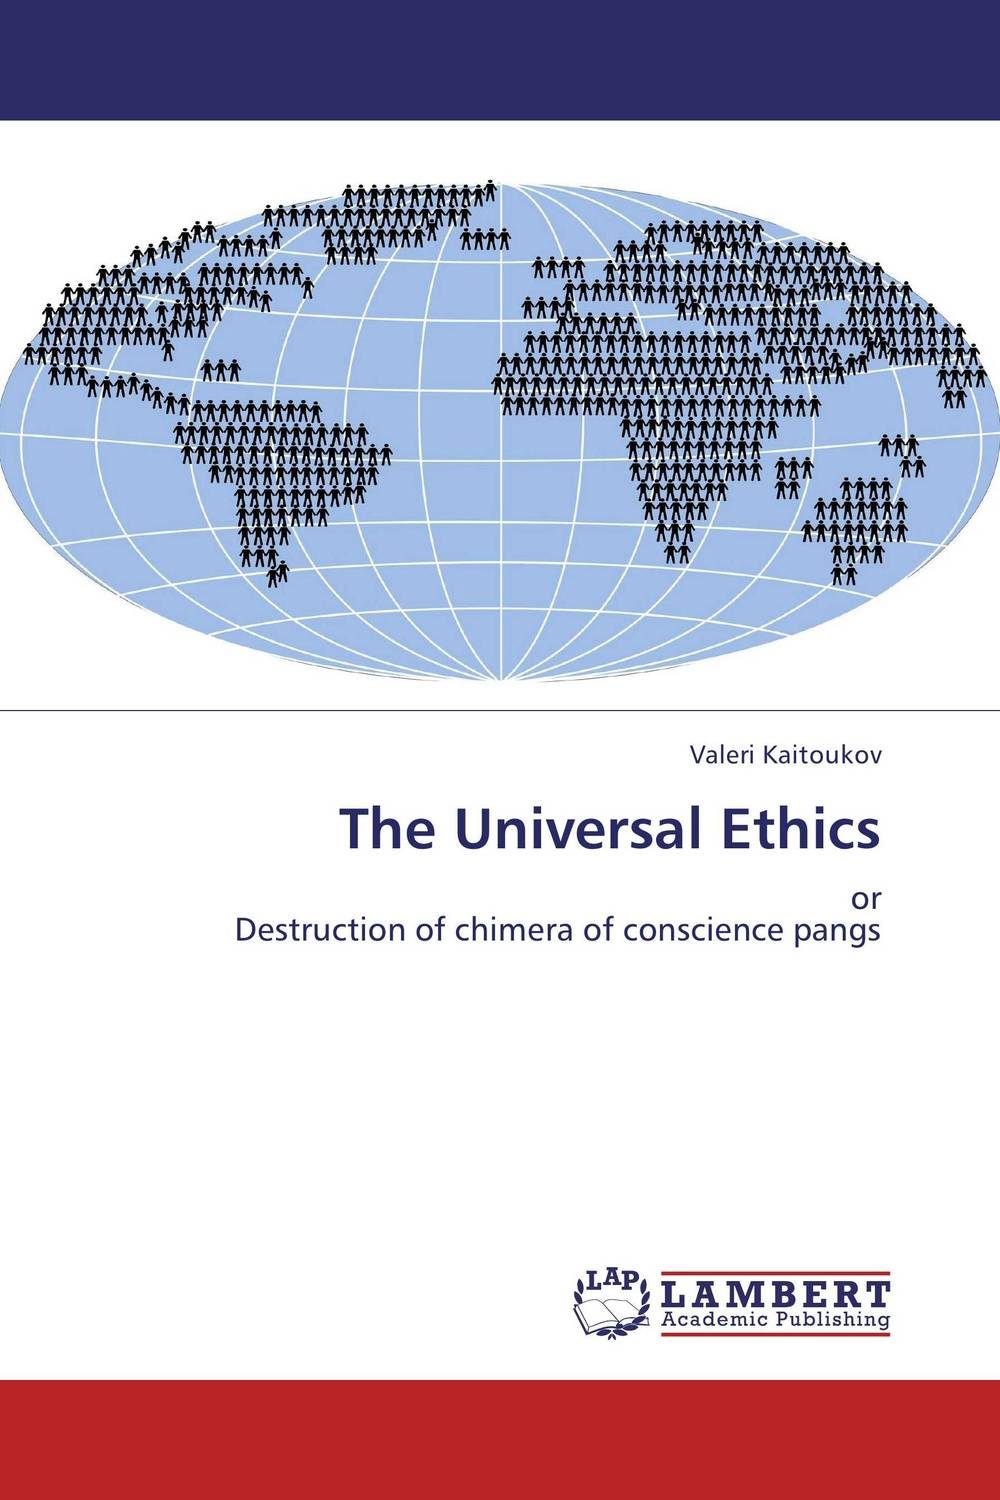 The Universal Ethics the application of global ethics to solve local improprieties